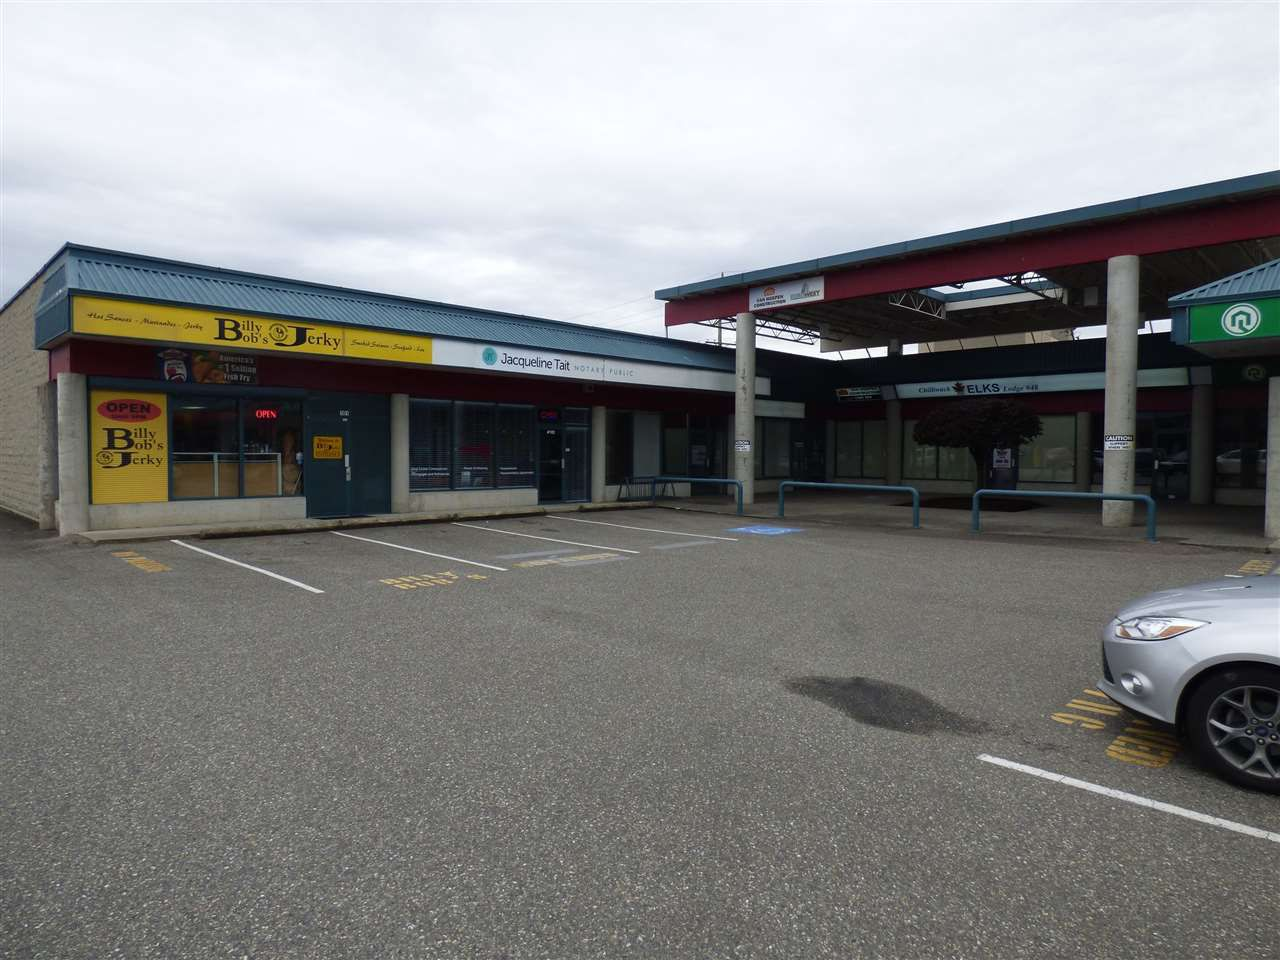 Main Photo: 103 A 8645 YOUNG Road in Chilliwack: Chilliwack W Young-Well Industrial for lease : MLS®# C8010936